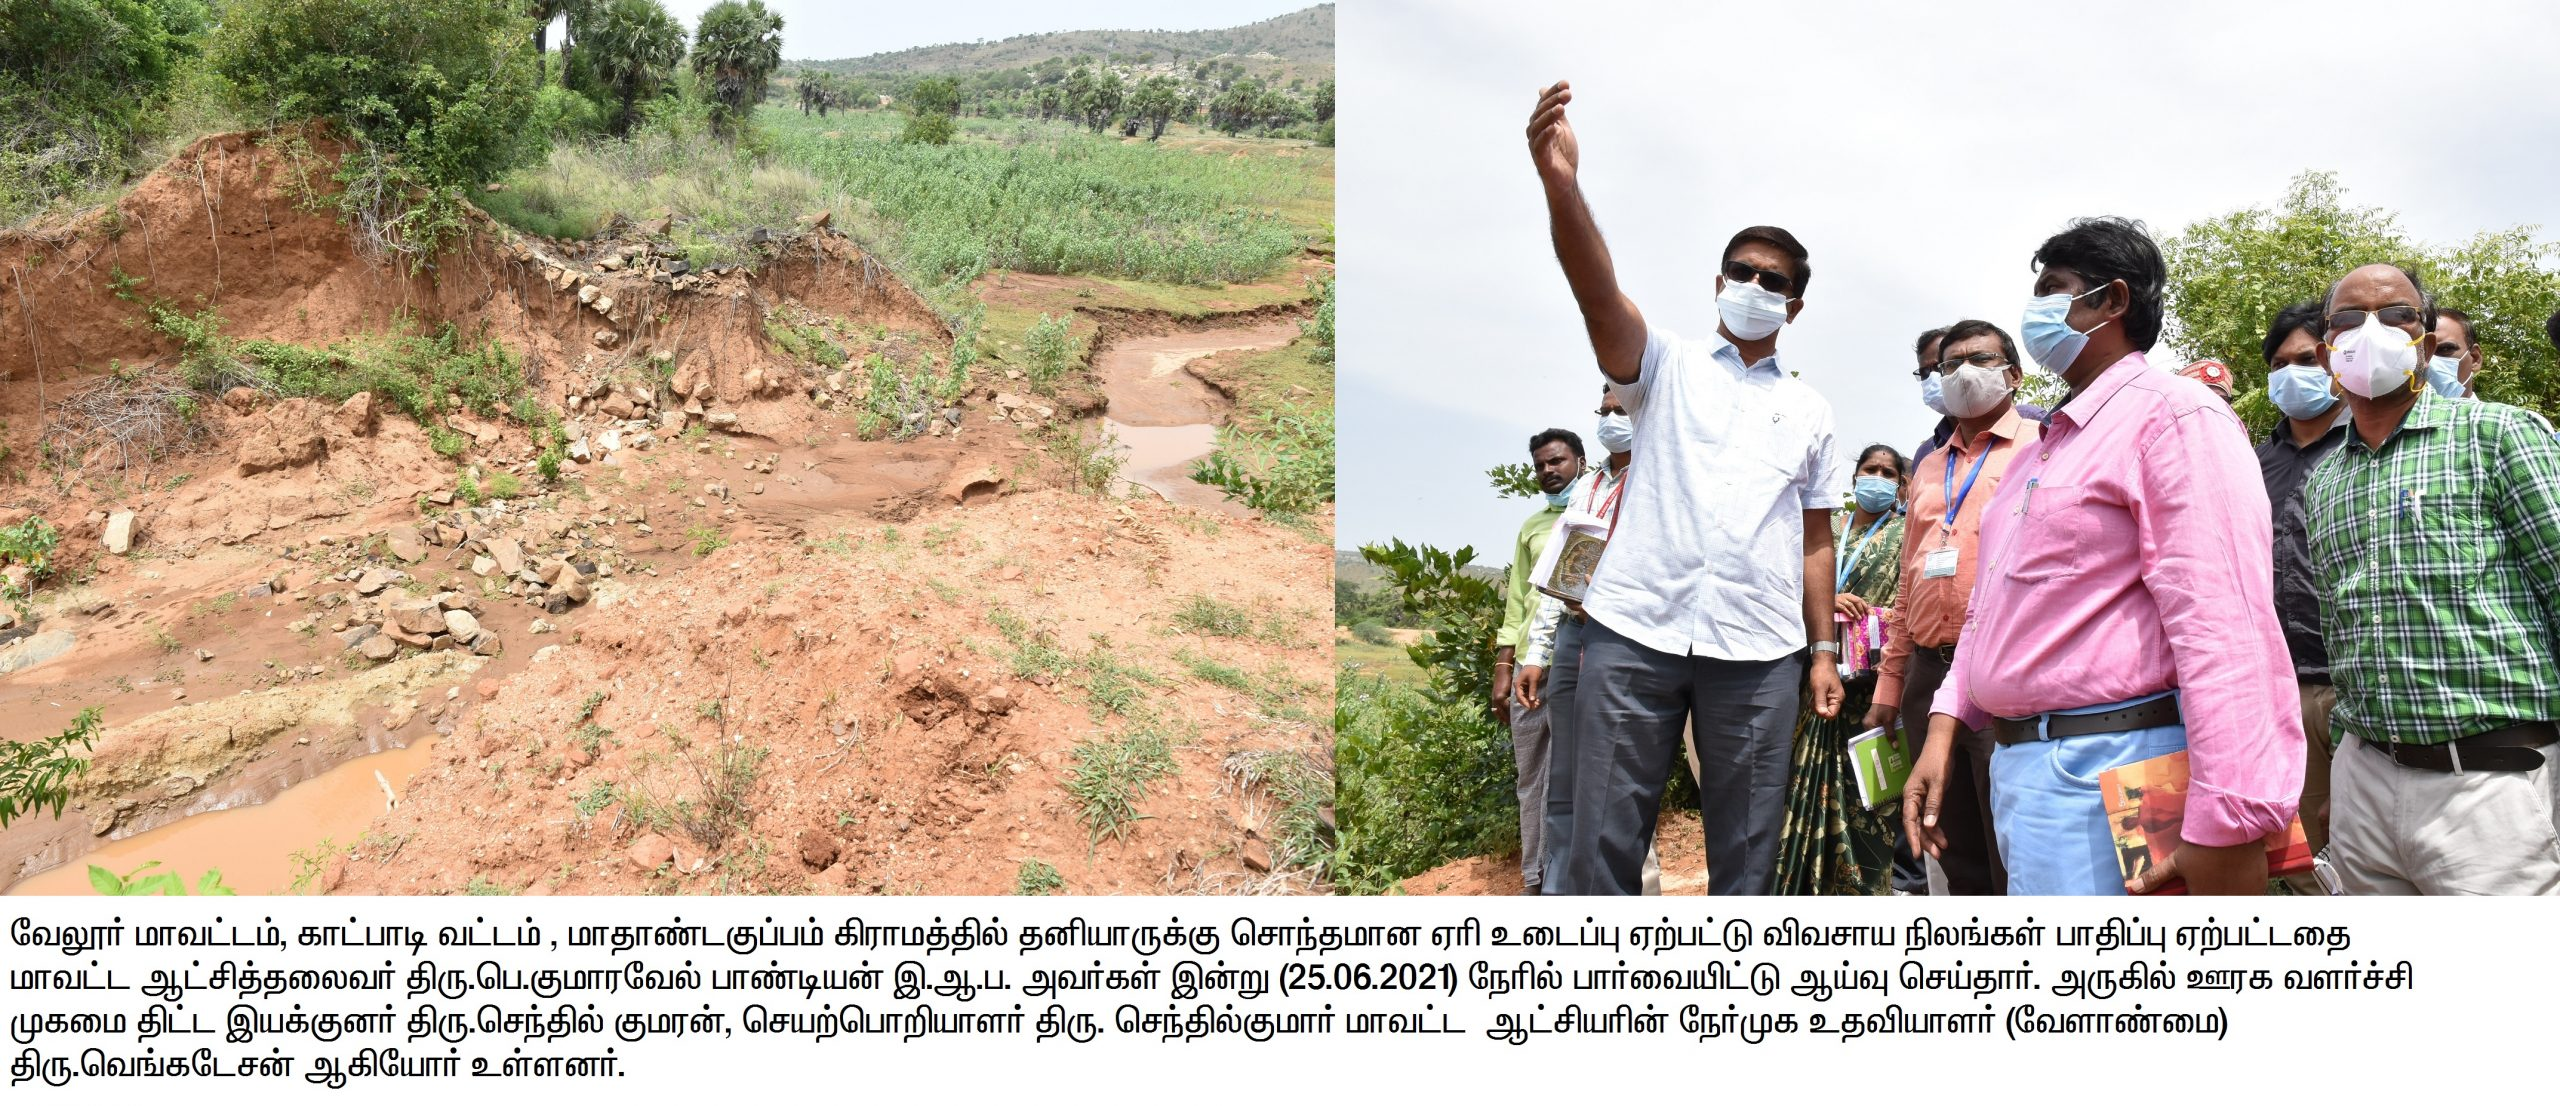 District Collector Inspection 25-06-2021